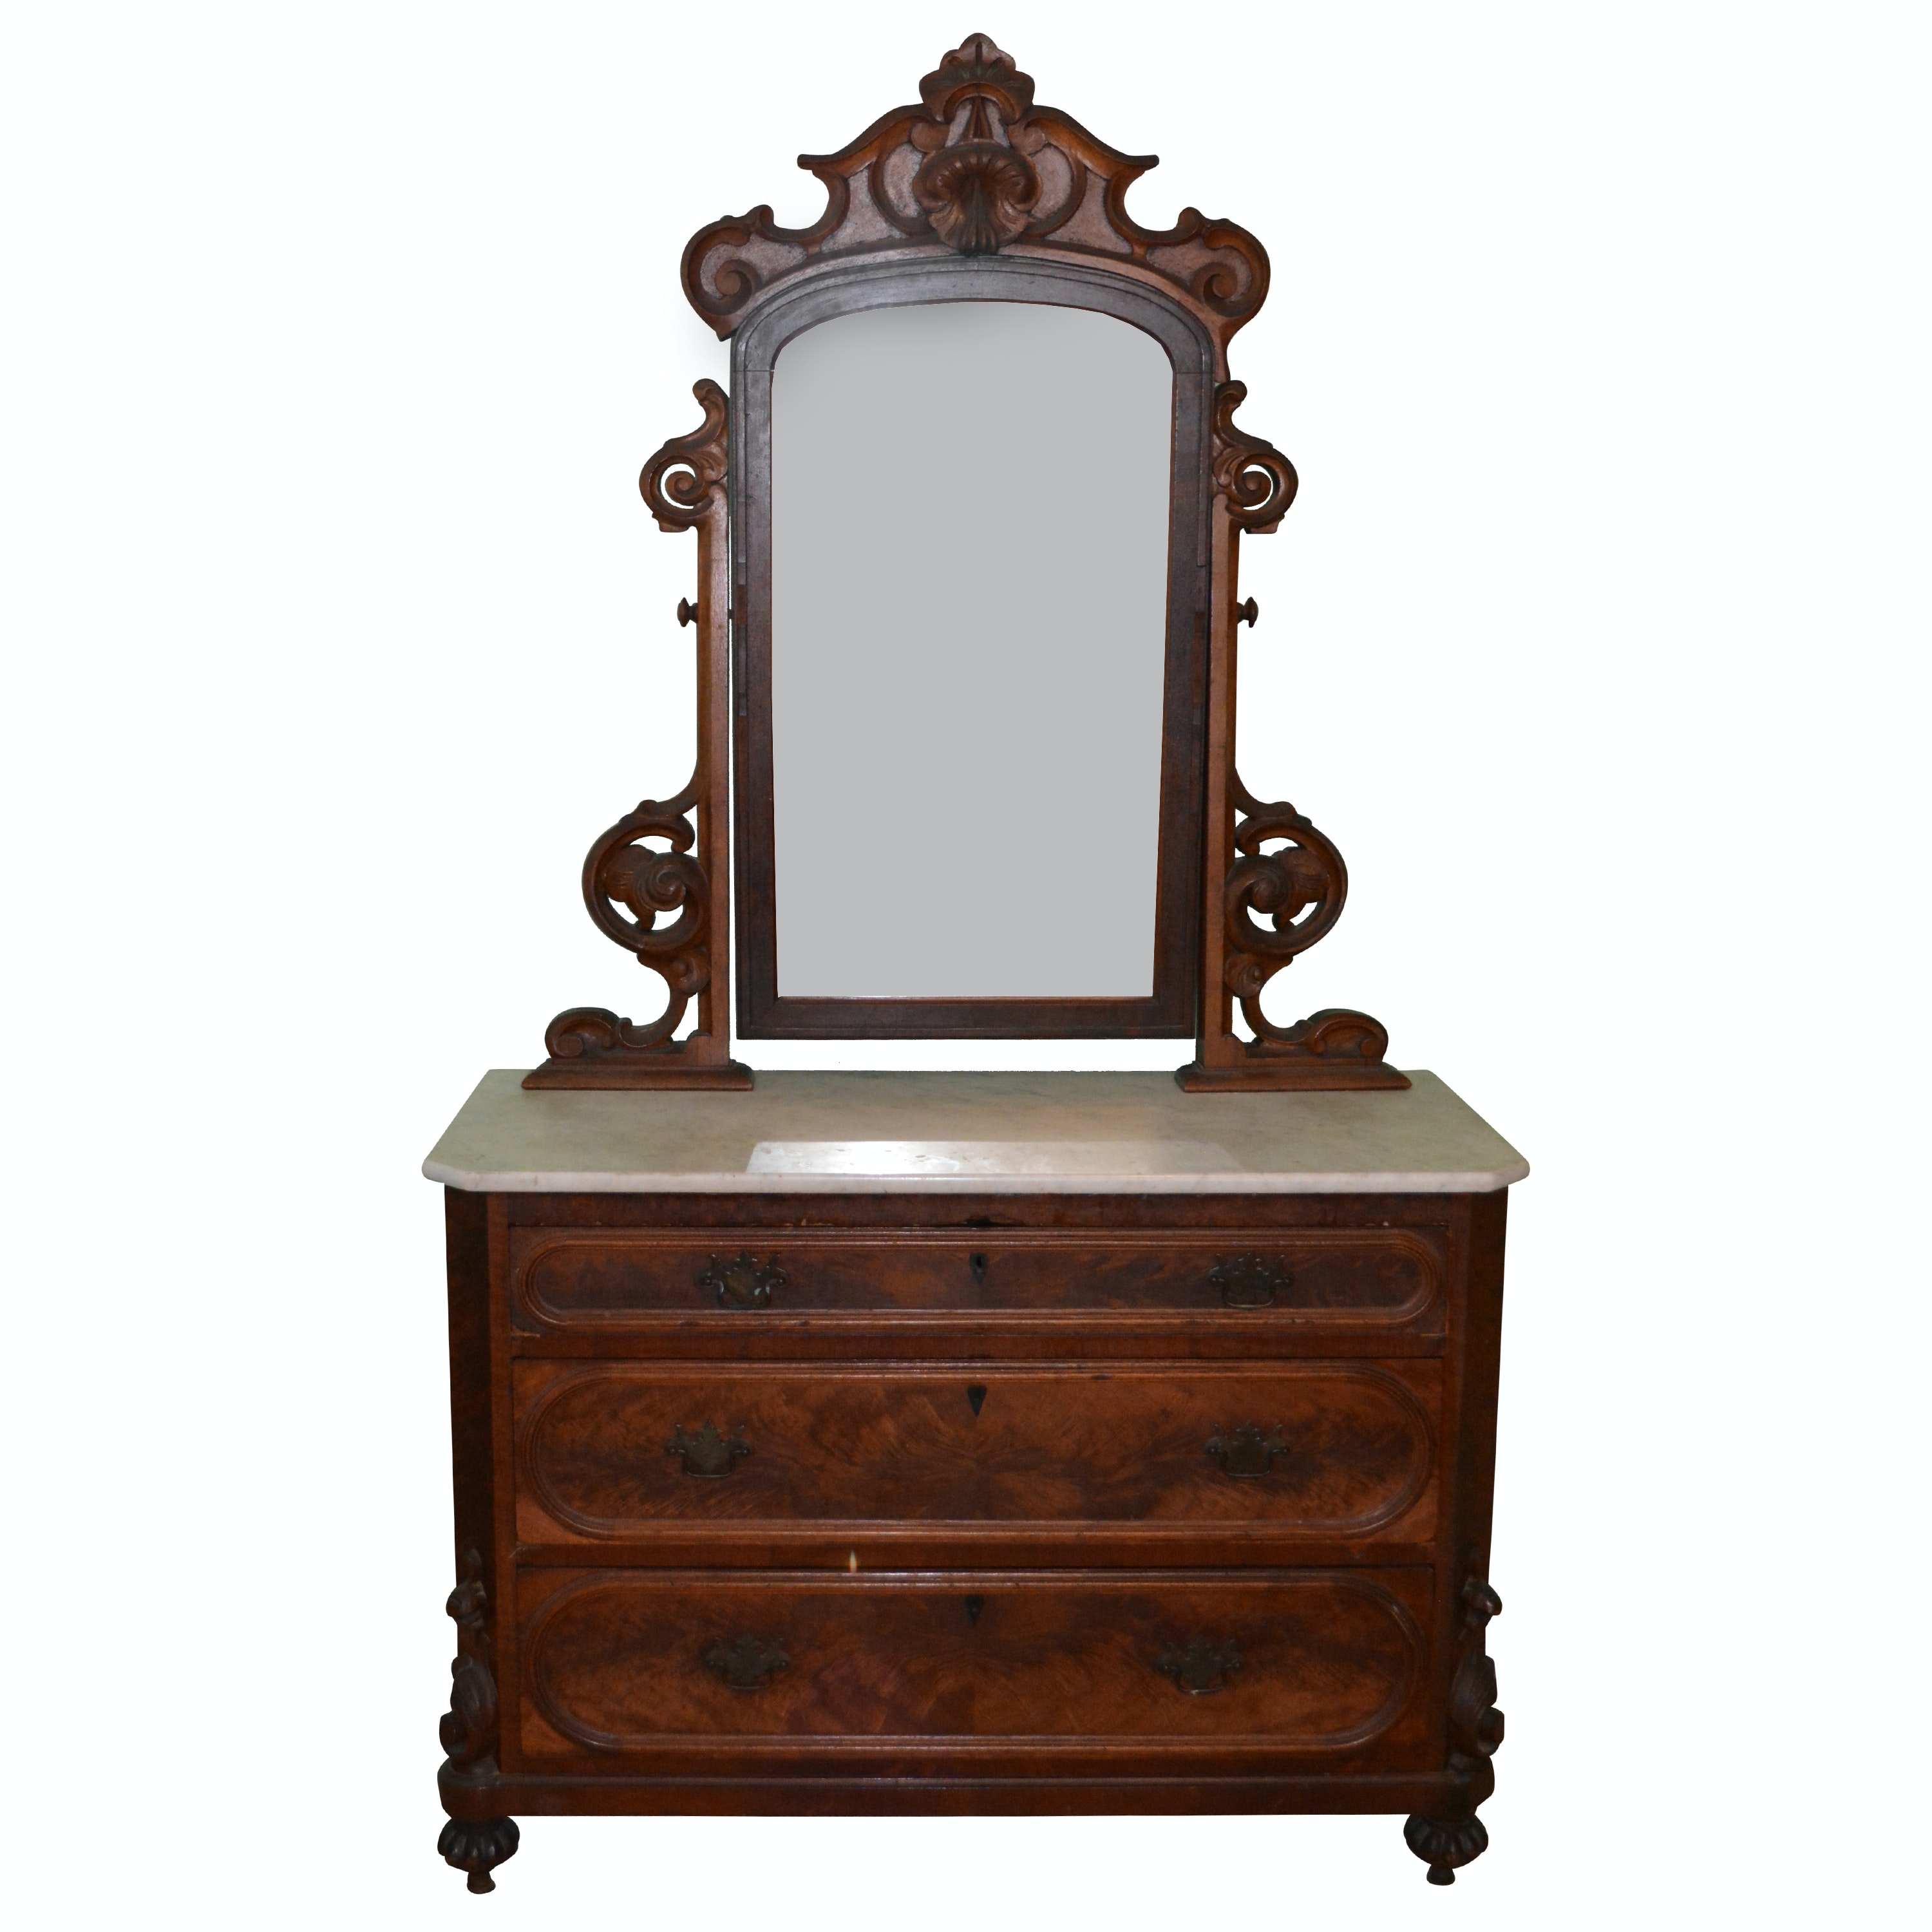 Antique Early Victorian Chest of Drawers with Mirror